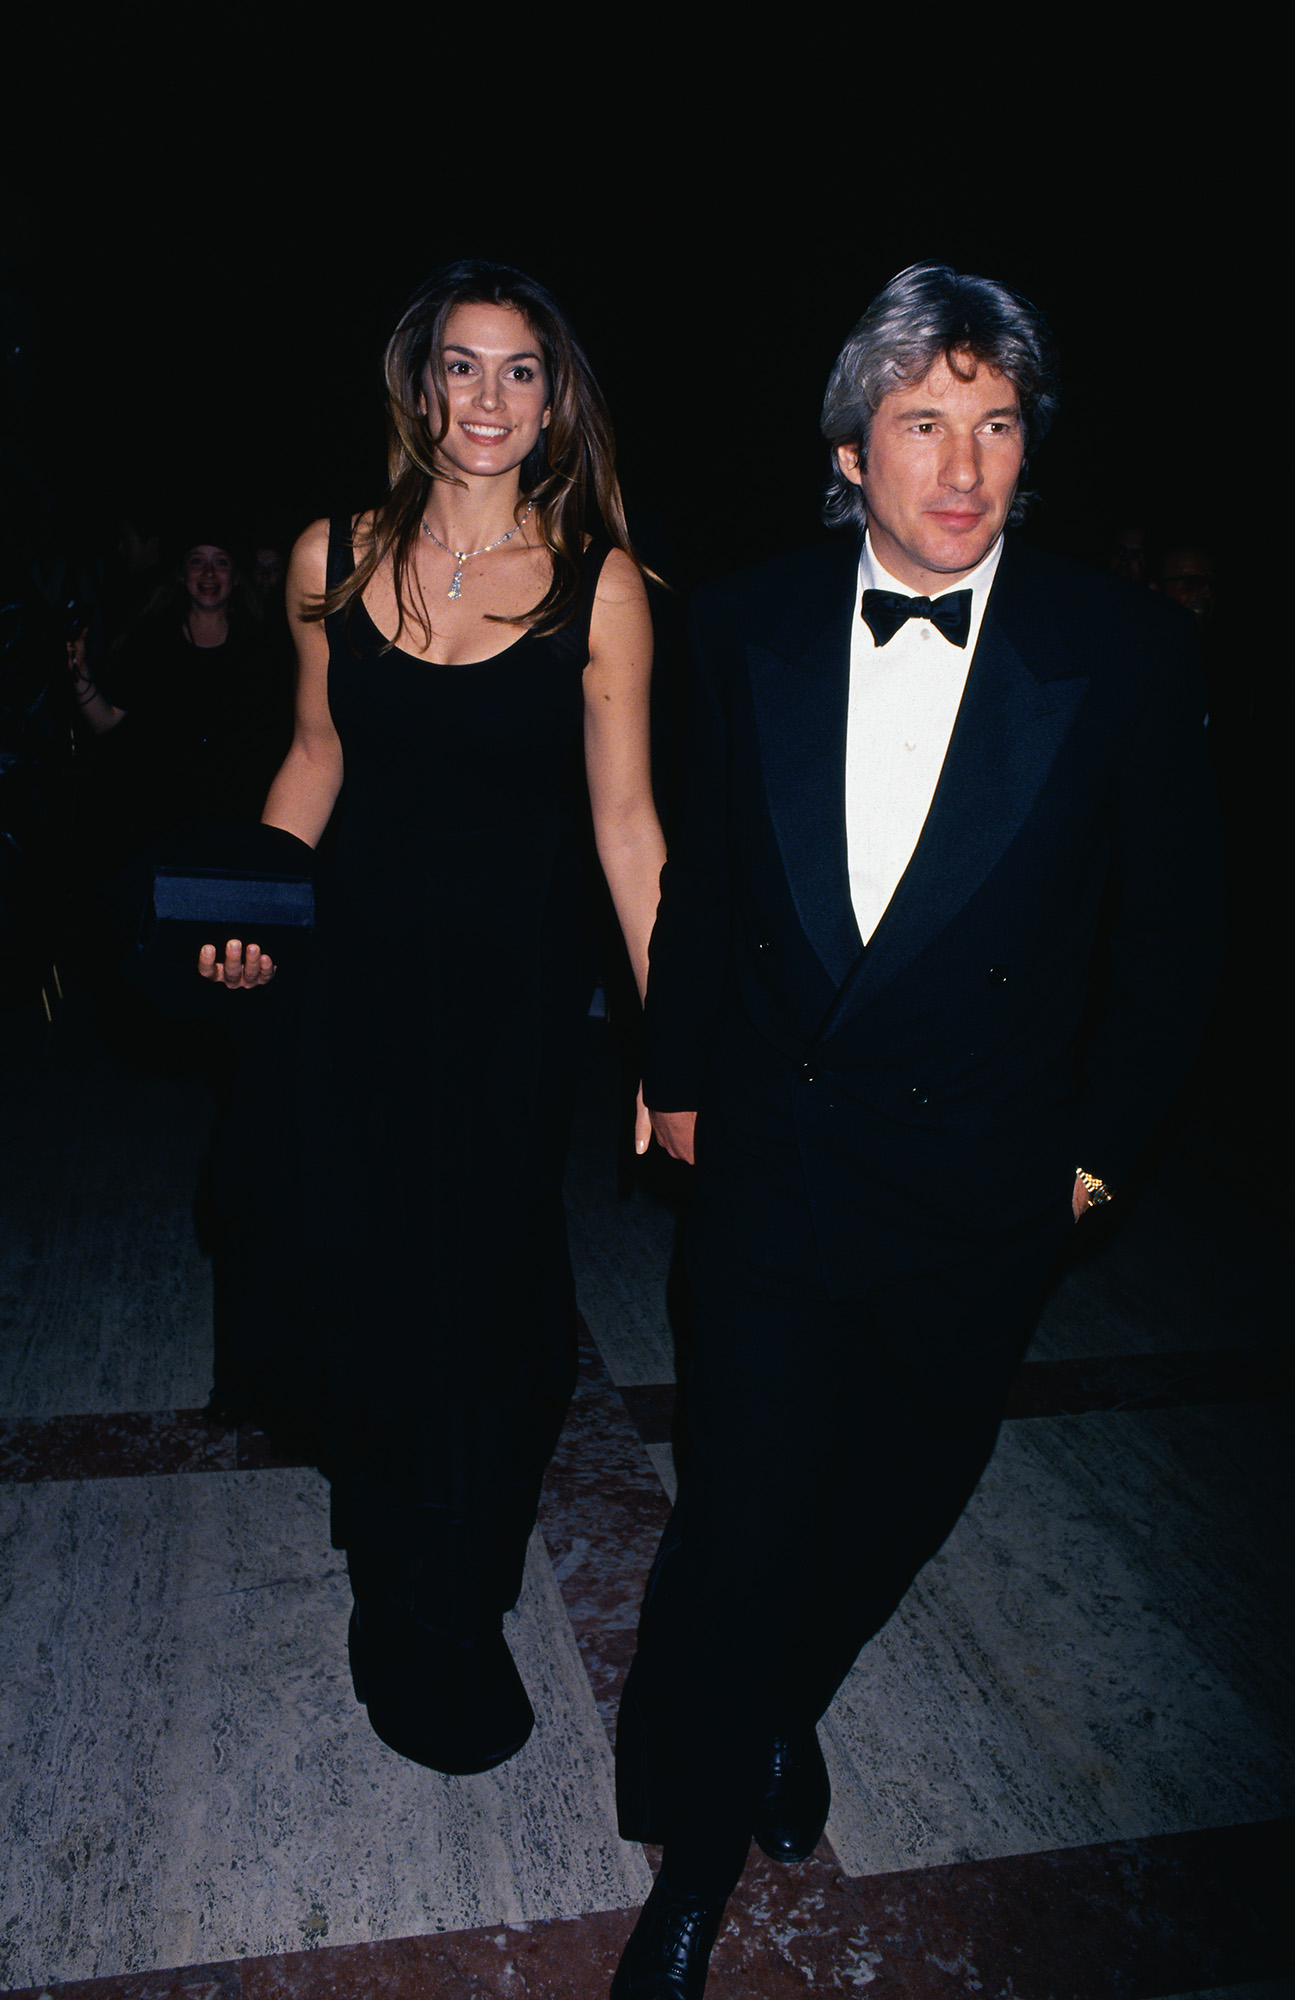 Richard Gere with Cindy Crawford